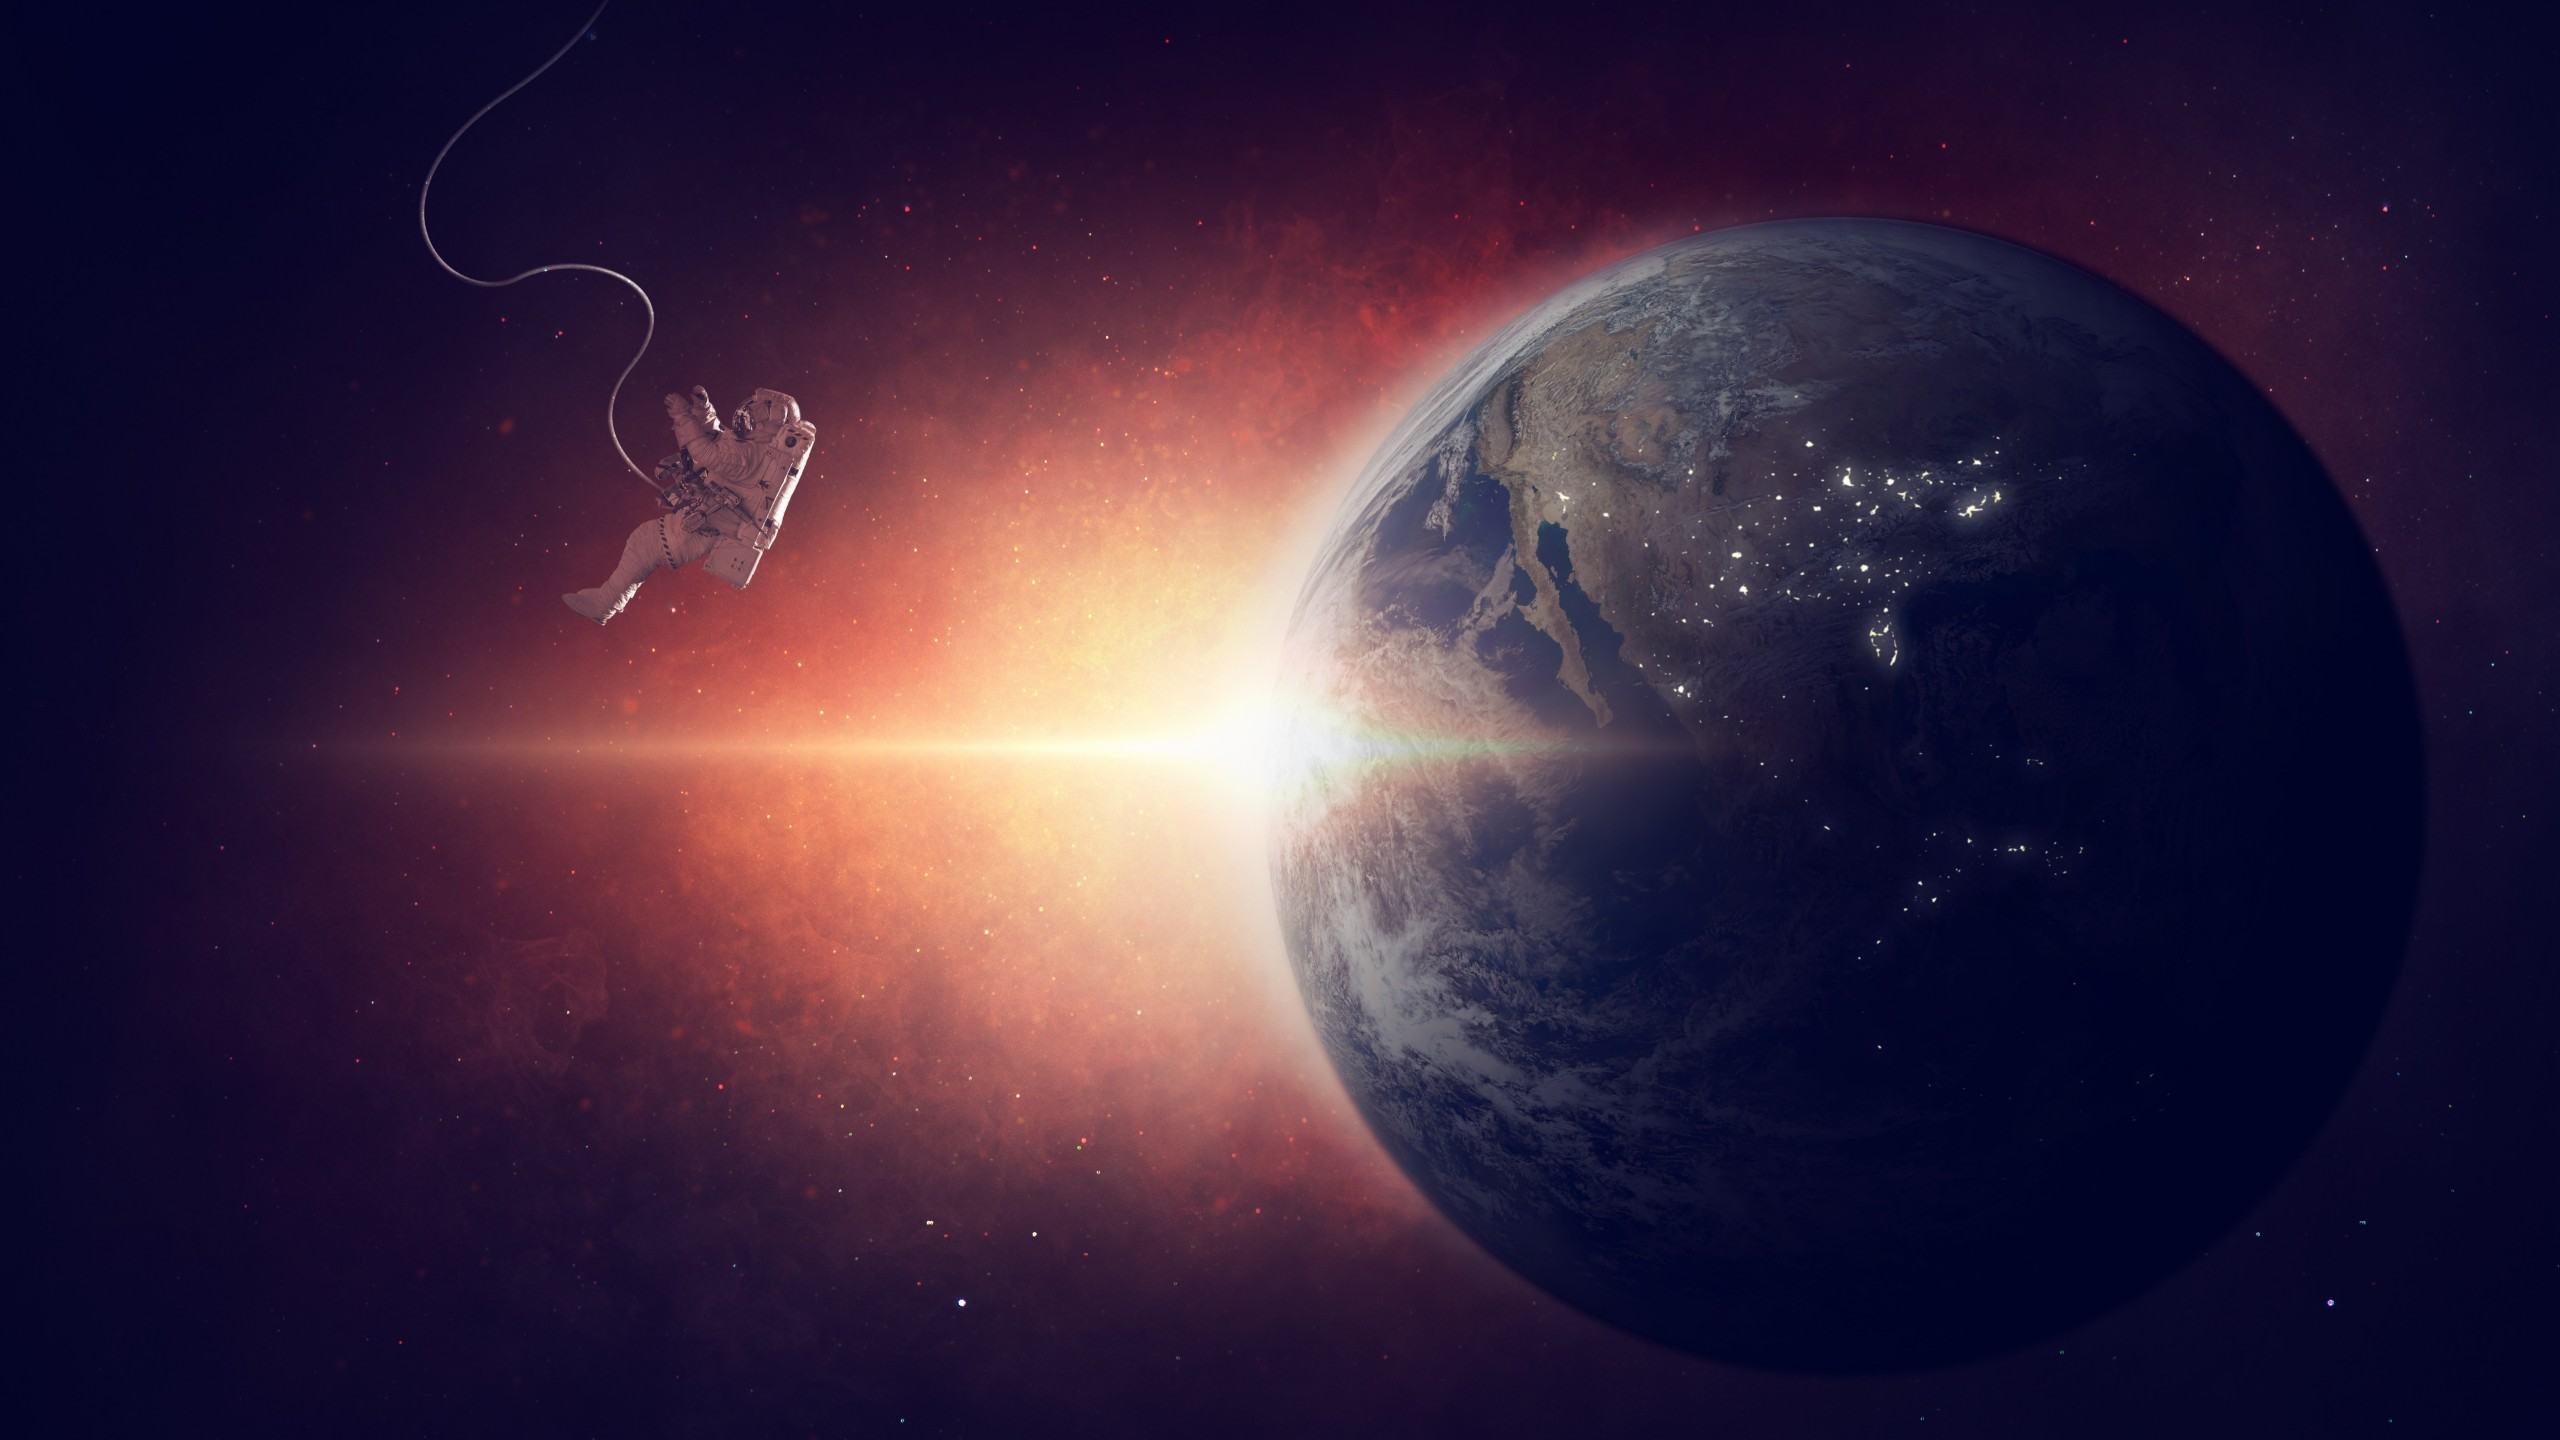 wallpaper earth, planet, space, galaxy, astronaut, 5k, space #17042